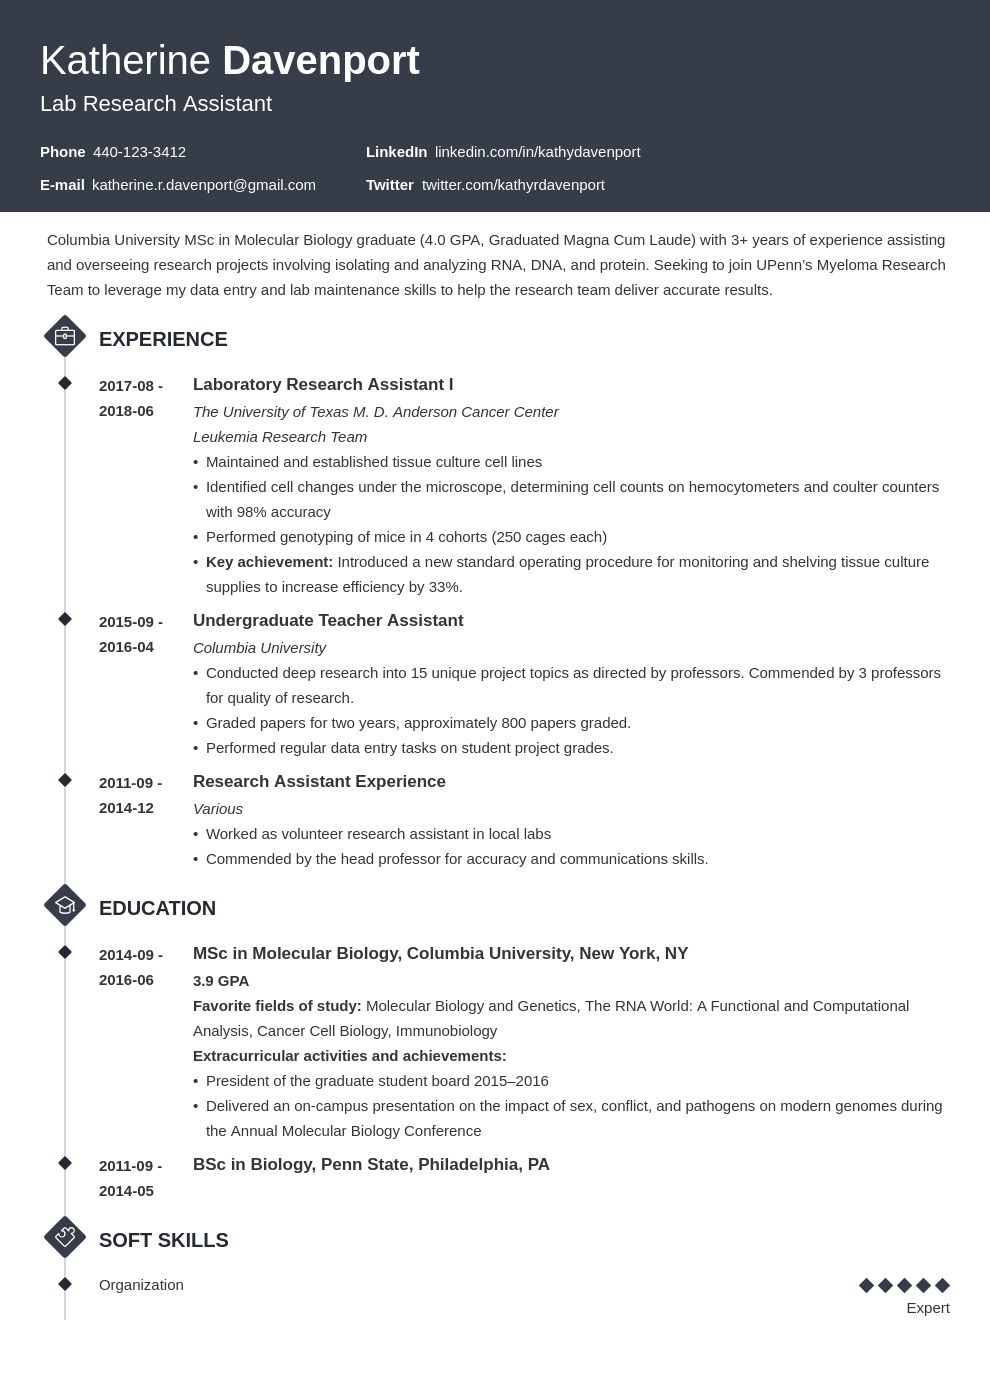 Research Assistant Resume Sample Job Description Skills